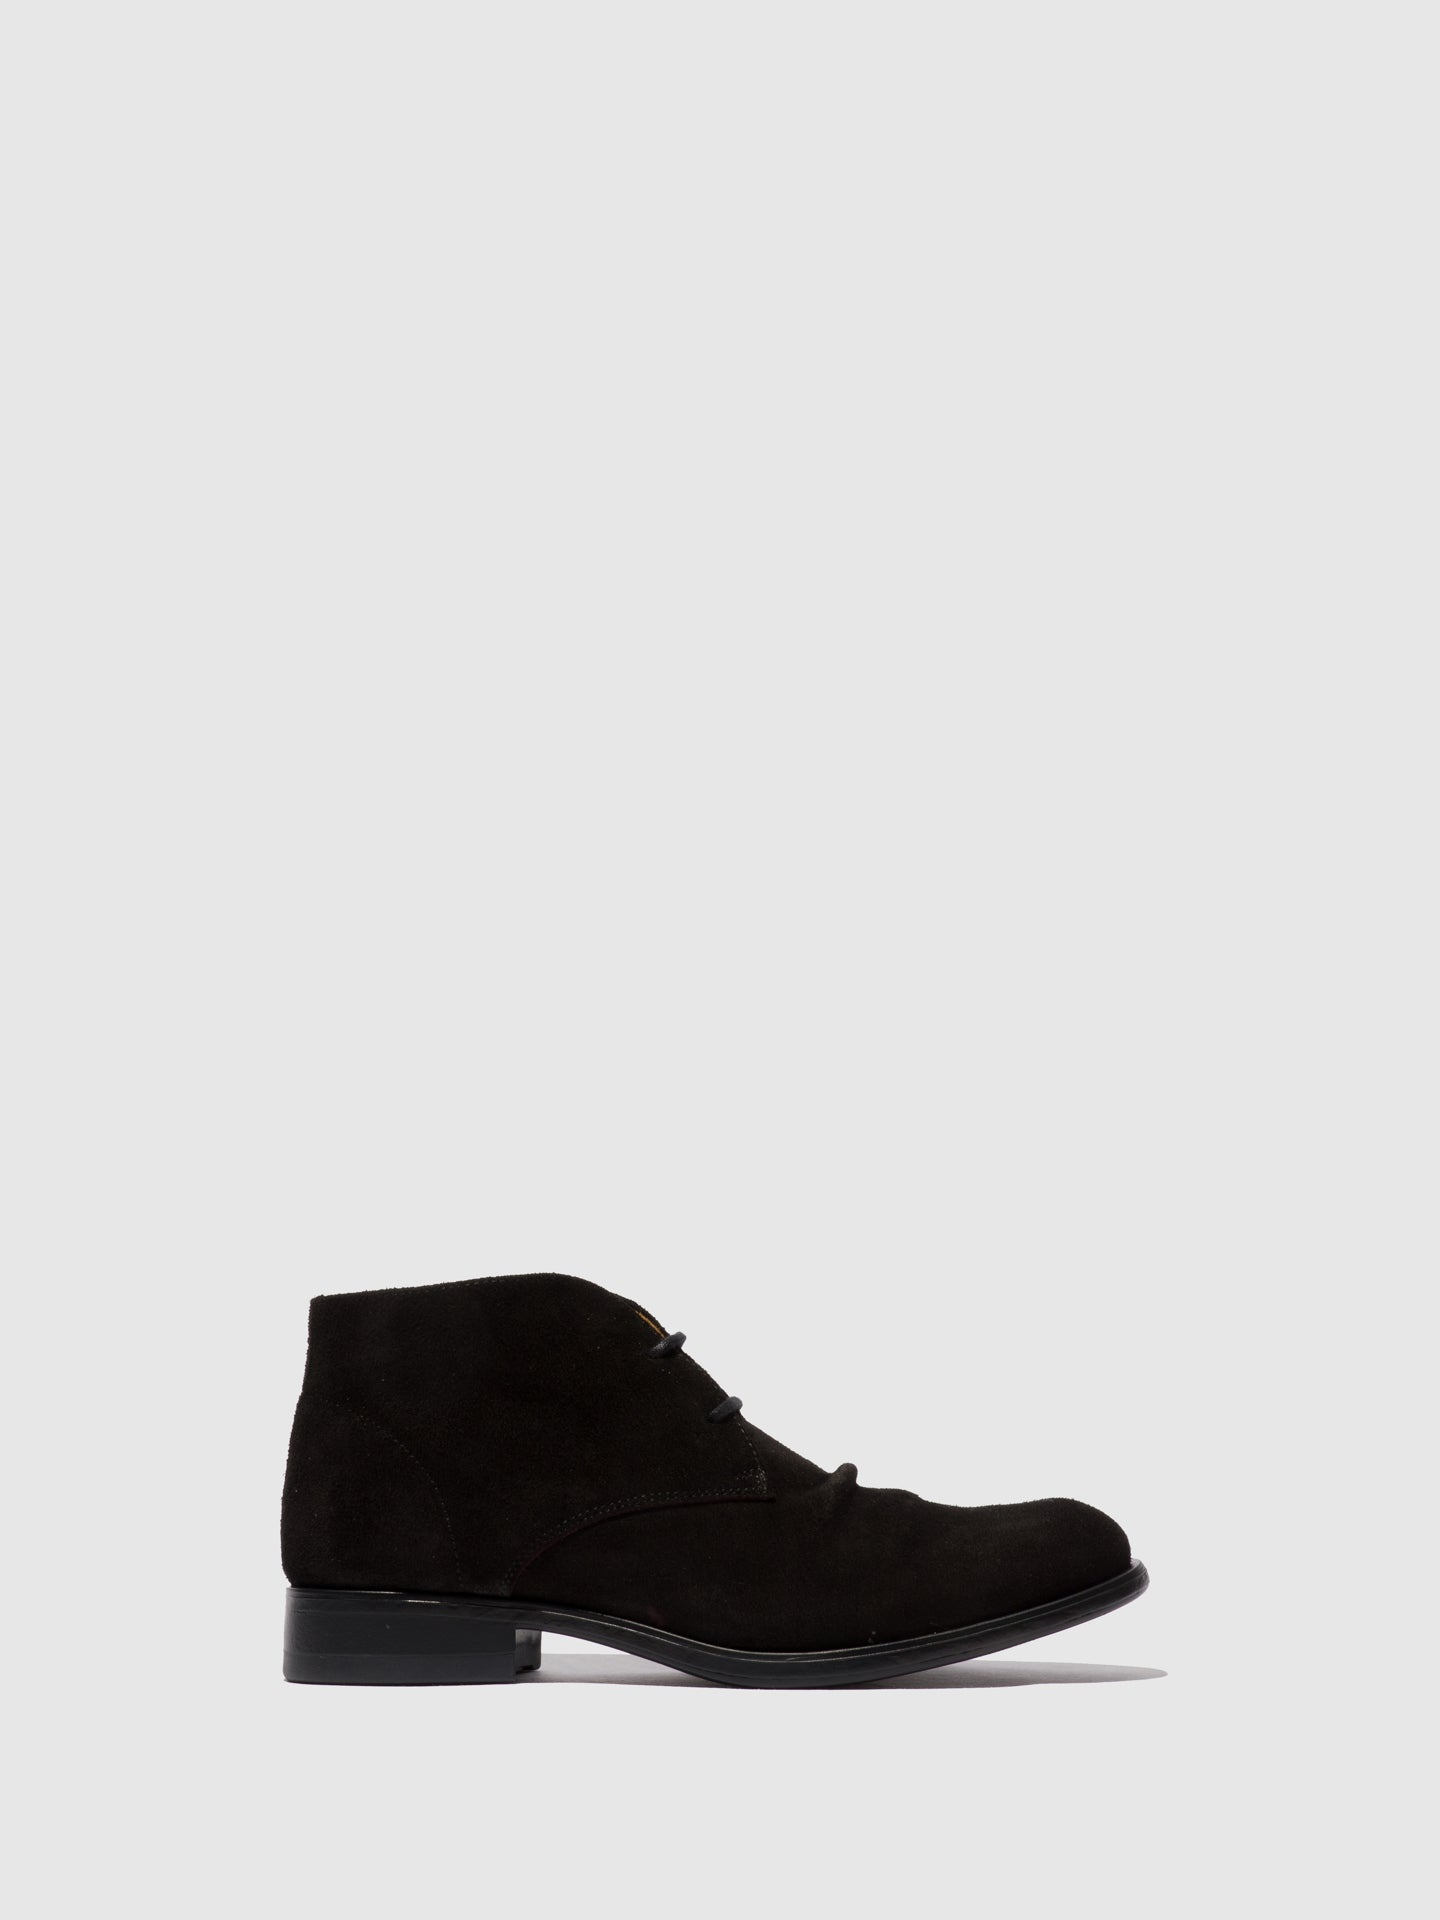 Fly London Botins com Atacadores MURO577FLY BLACK SUEDE